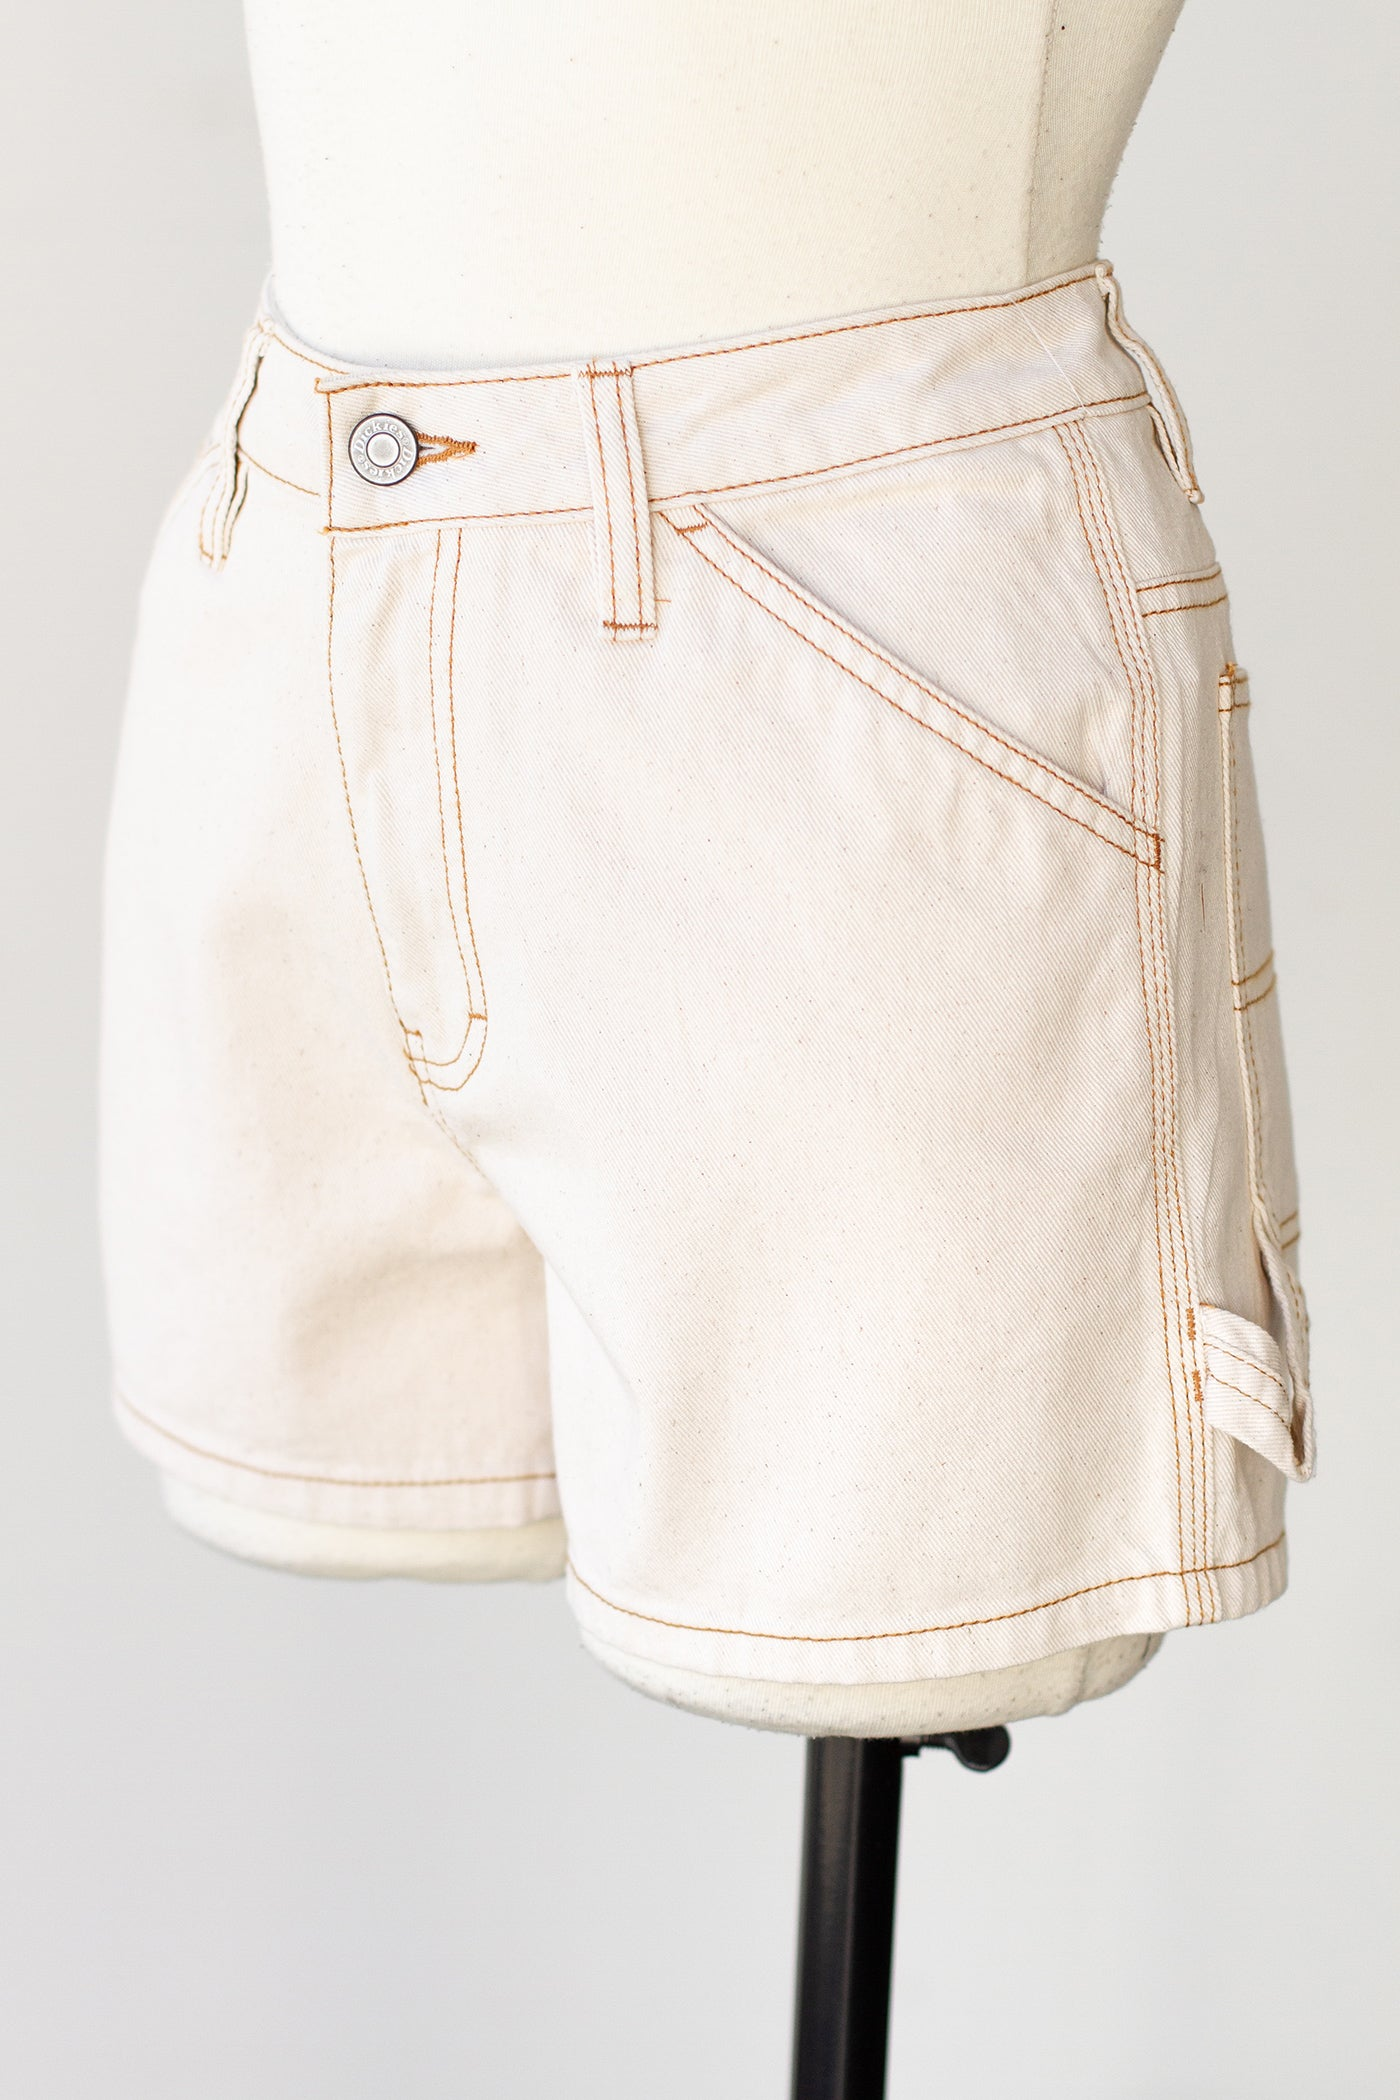 Dickie's Carpenter Shorts